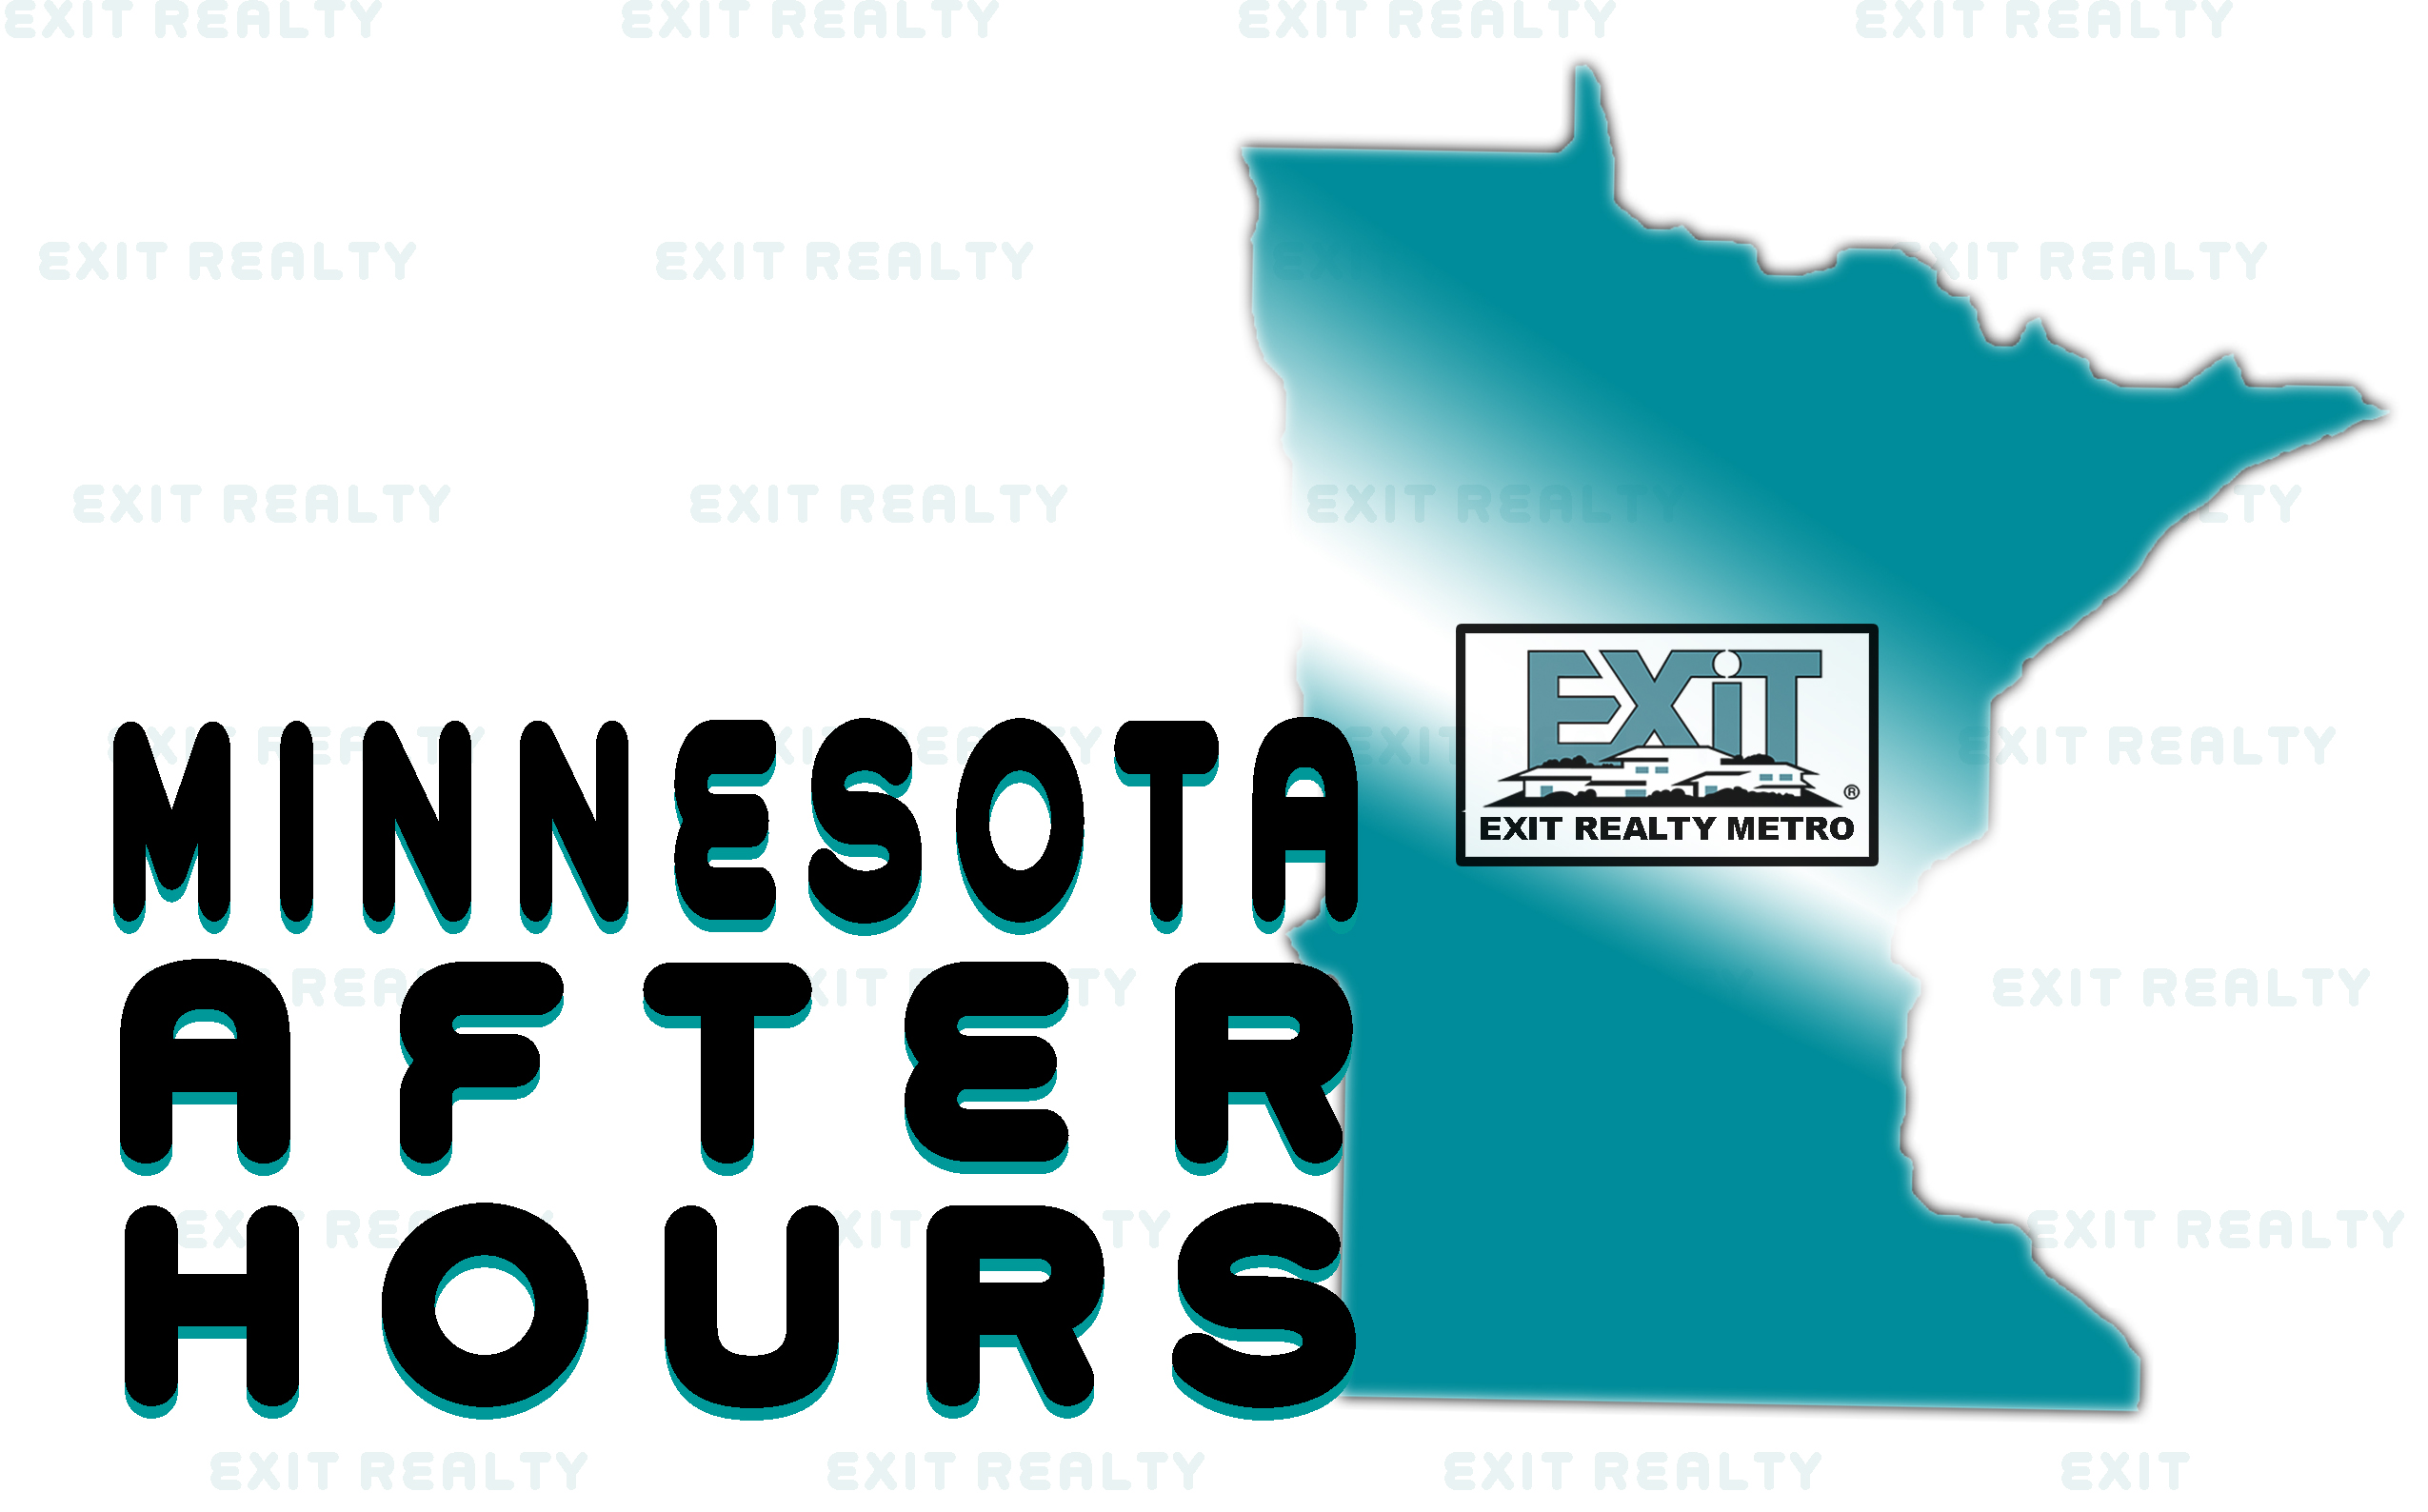 Minneapolis Real Estate Careers with EXIT Realty Metro After Dark